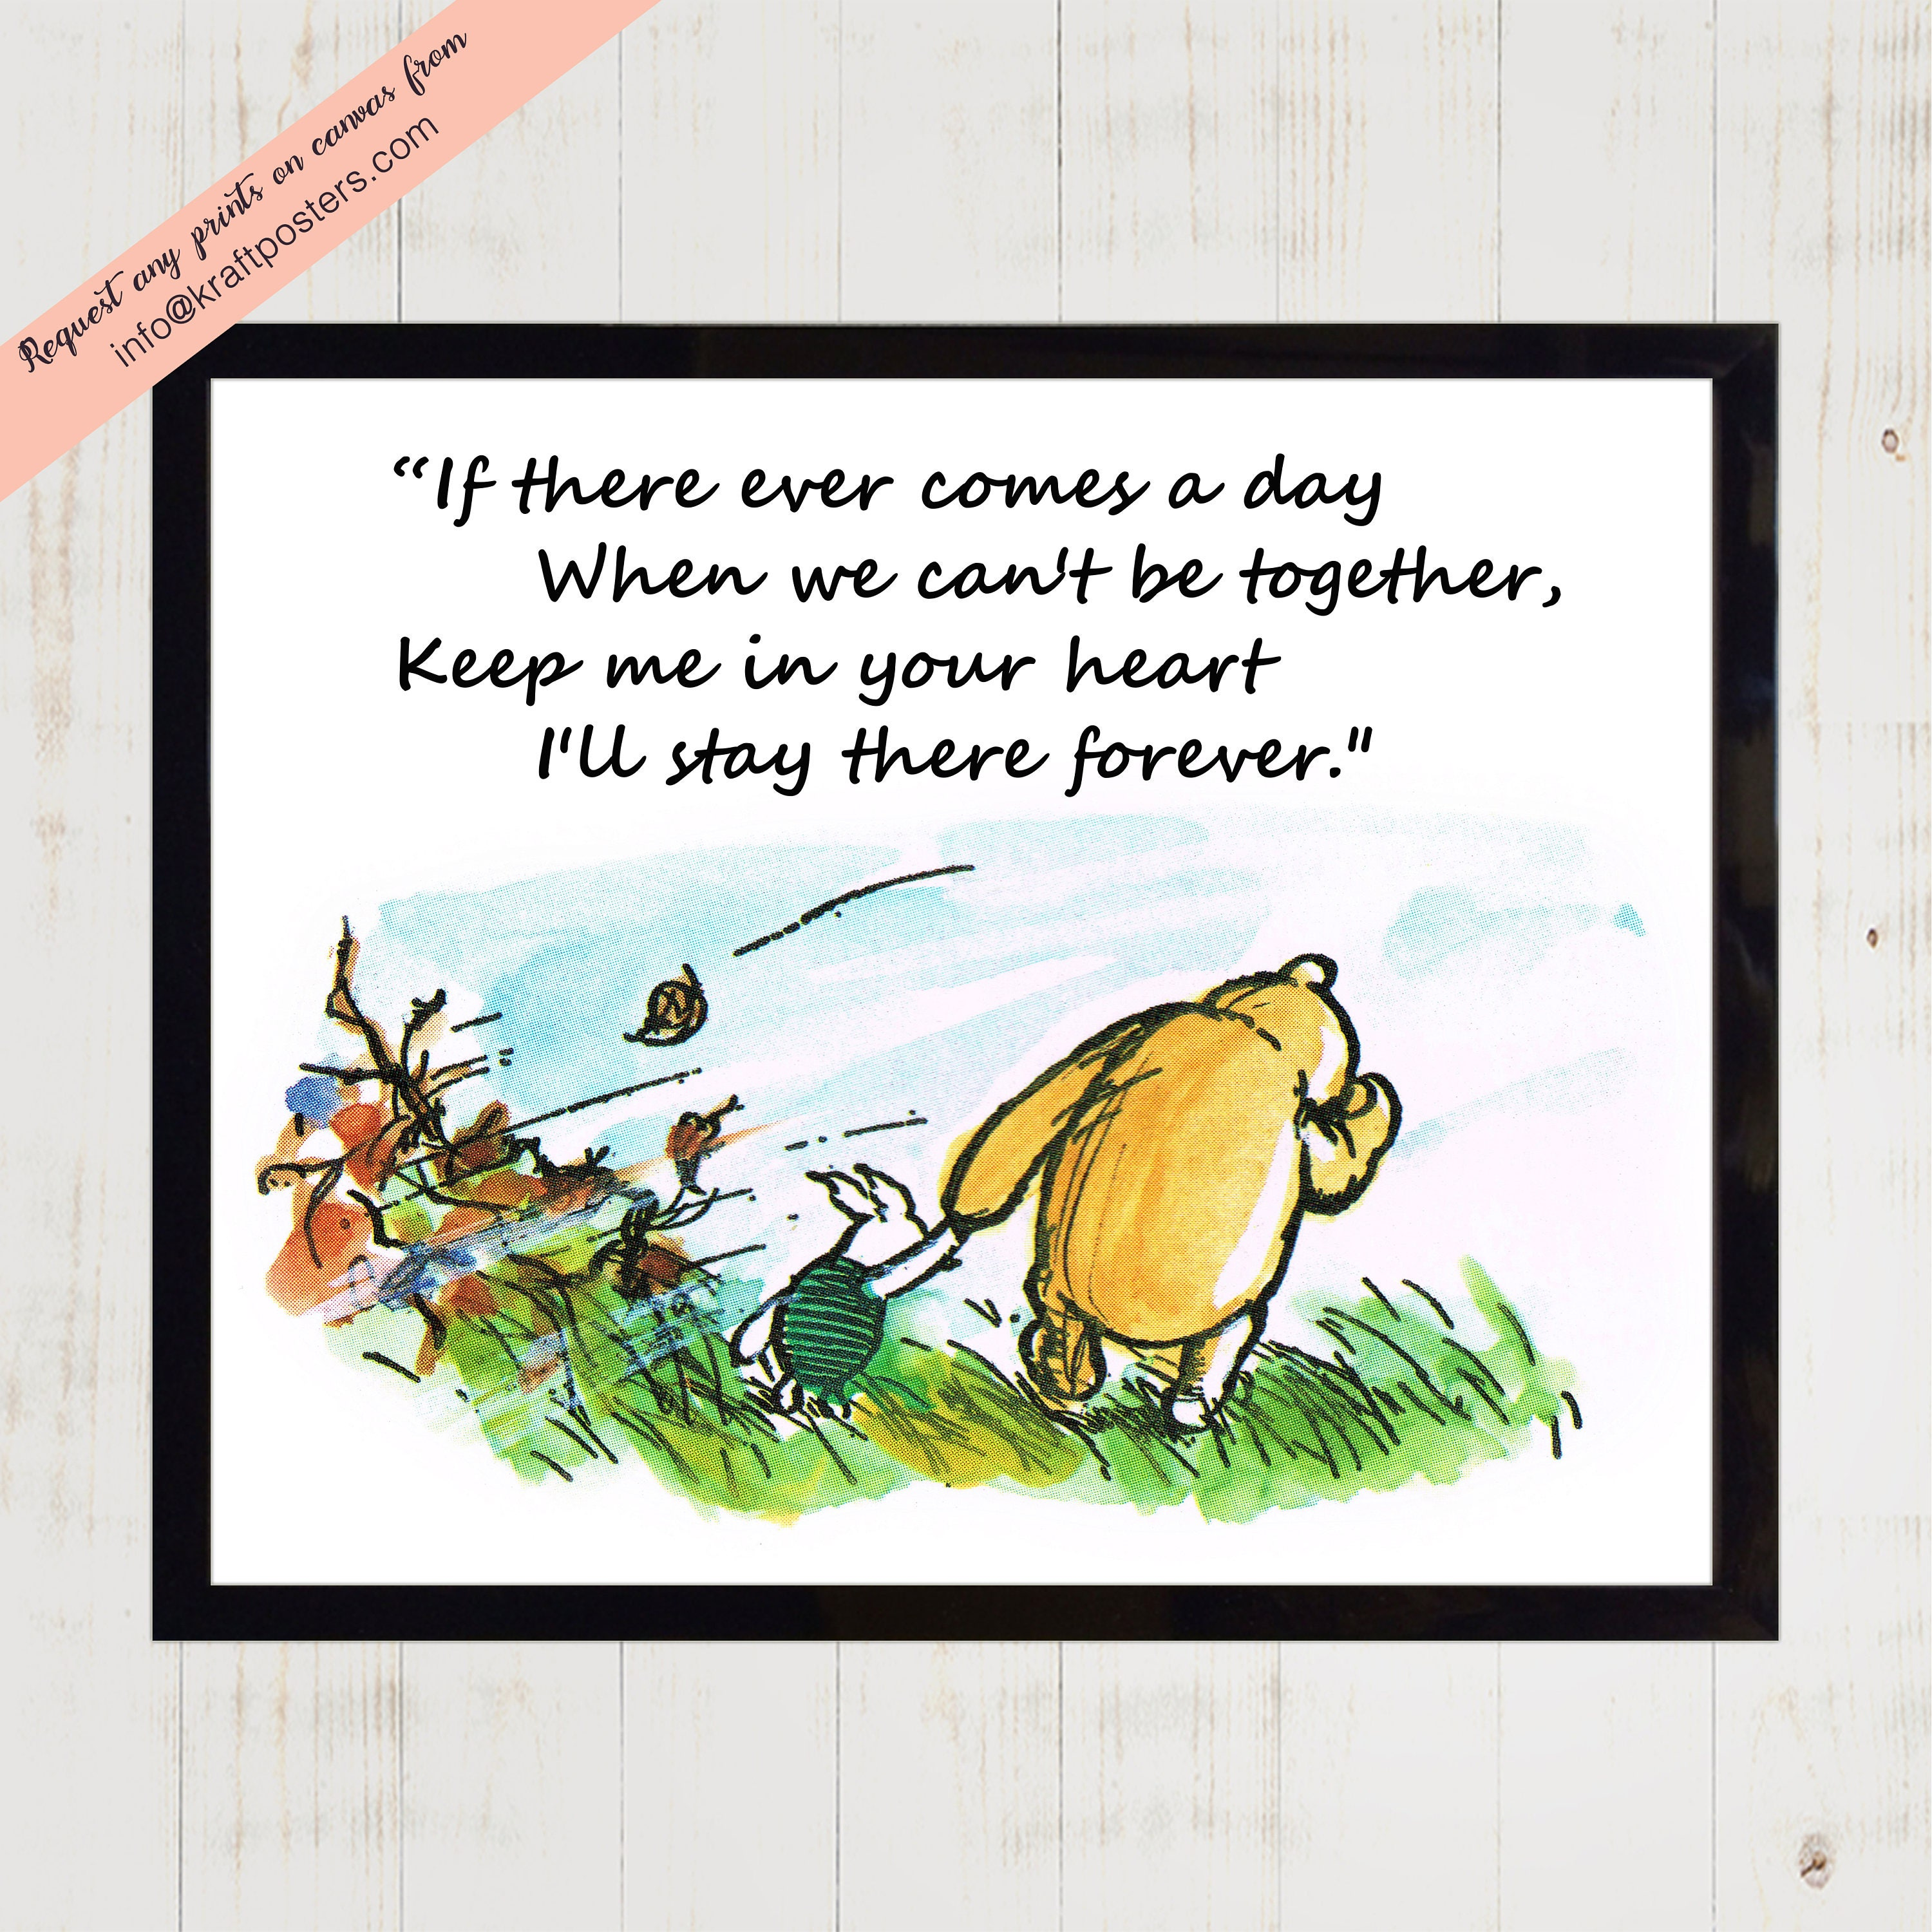 Winnie The Pooh Quotes About Life Winnie The Pooh Quotes 'if There Ever Comes A Day When We